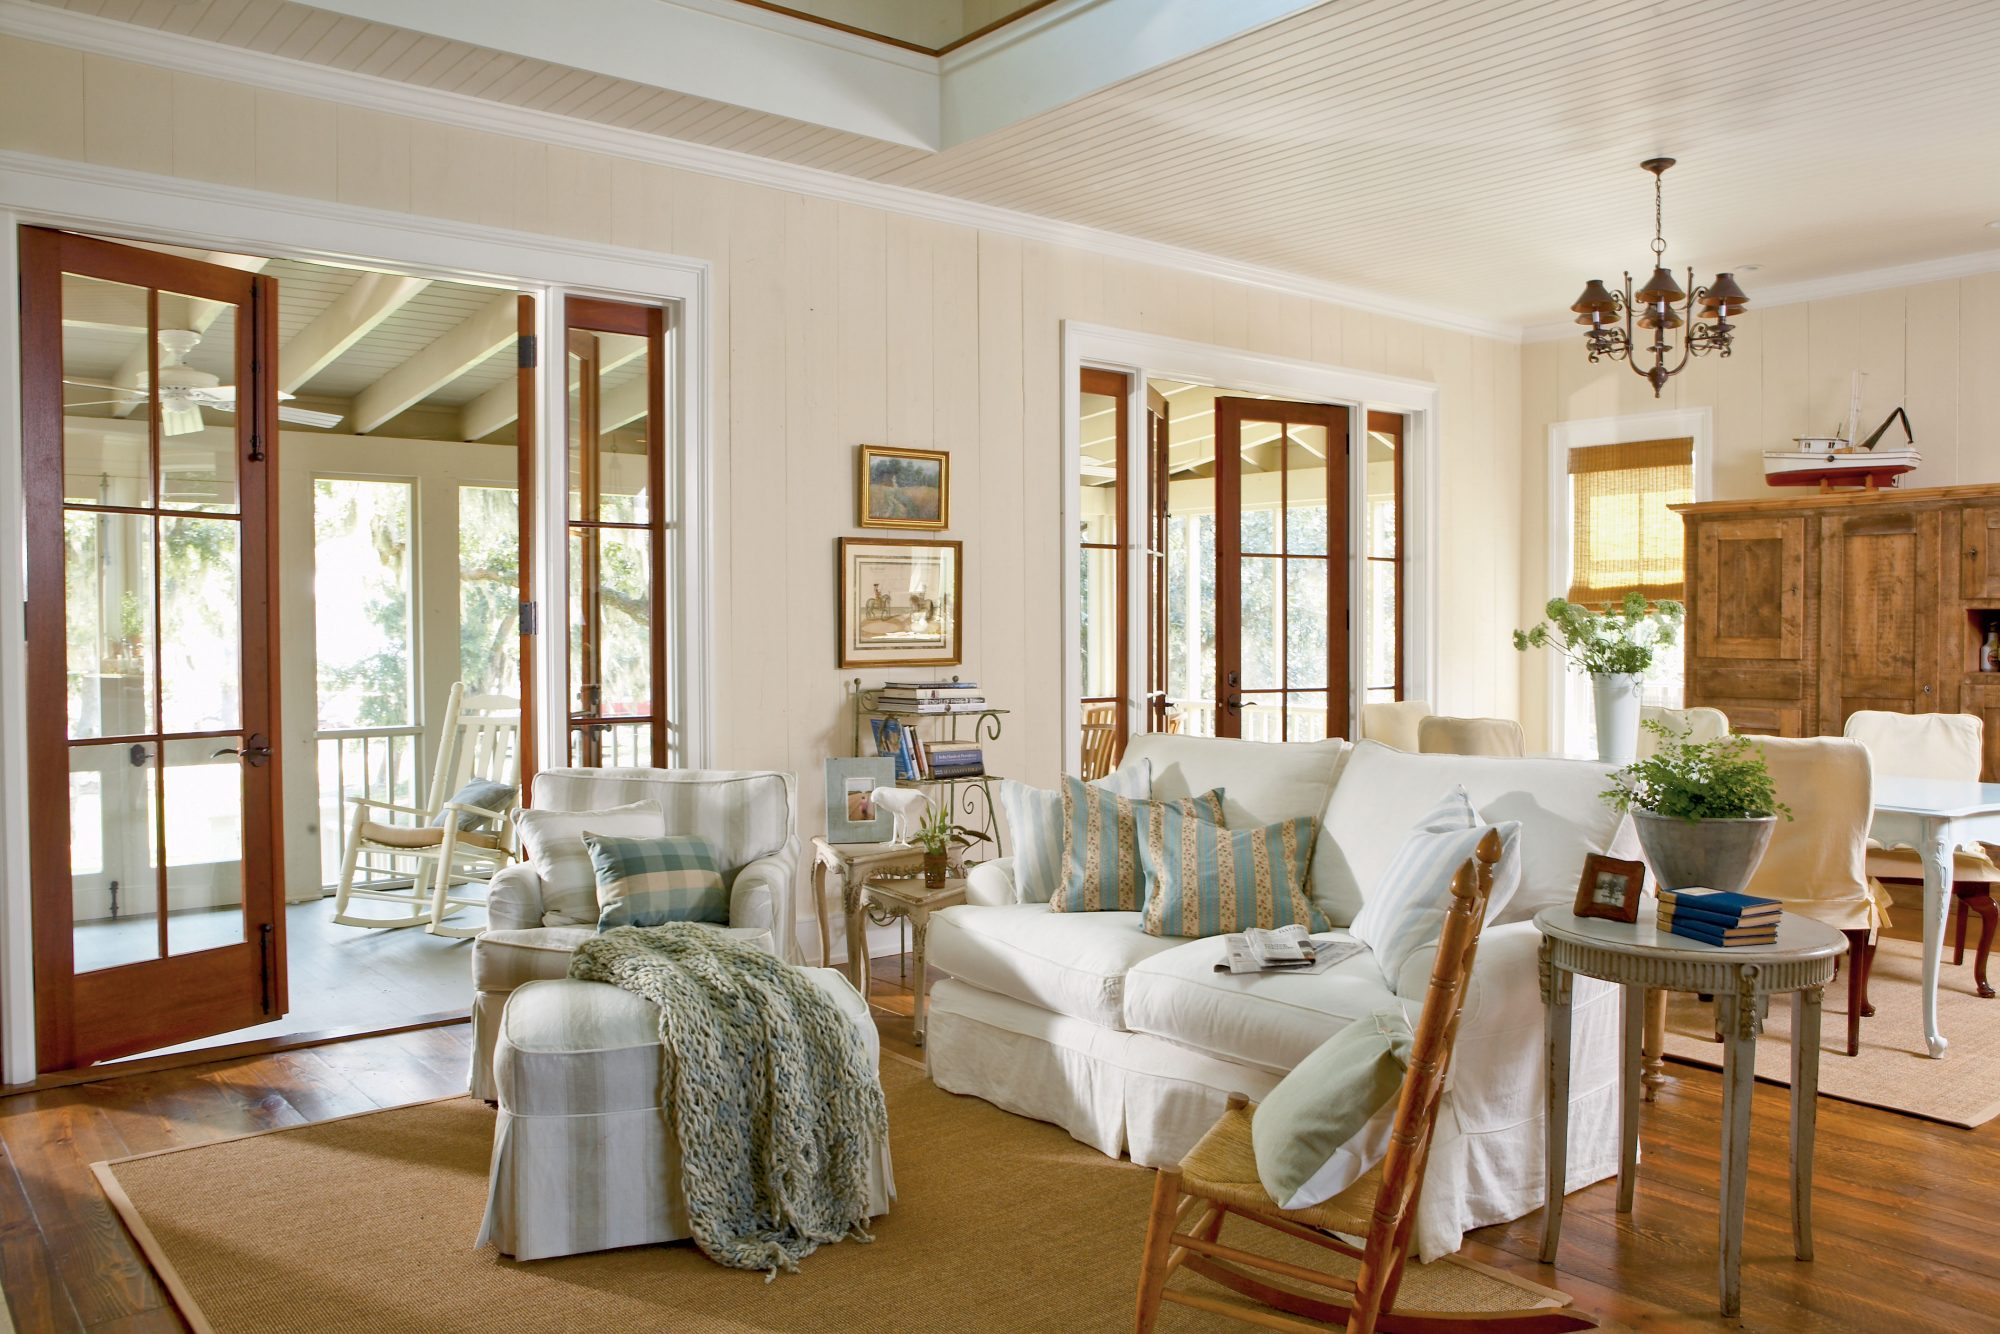 Cypress wood walls, rocking chairs, and muted colors enhance the homey feel.